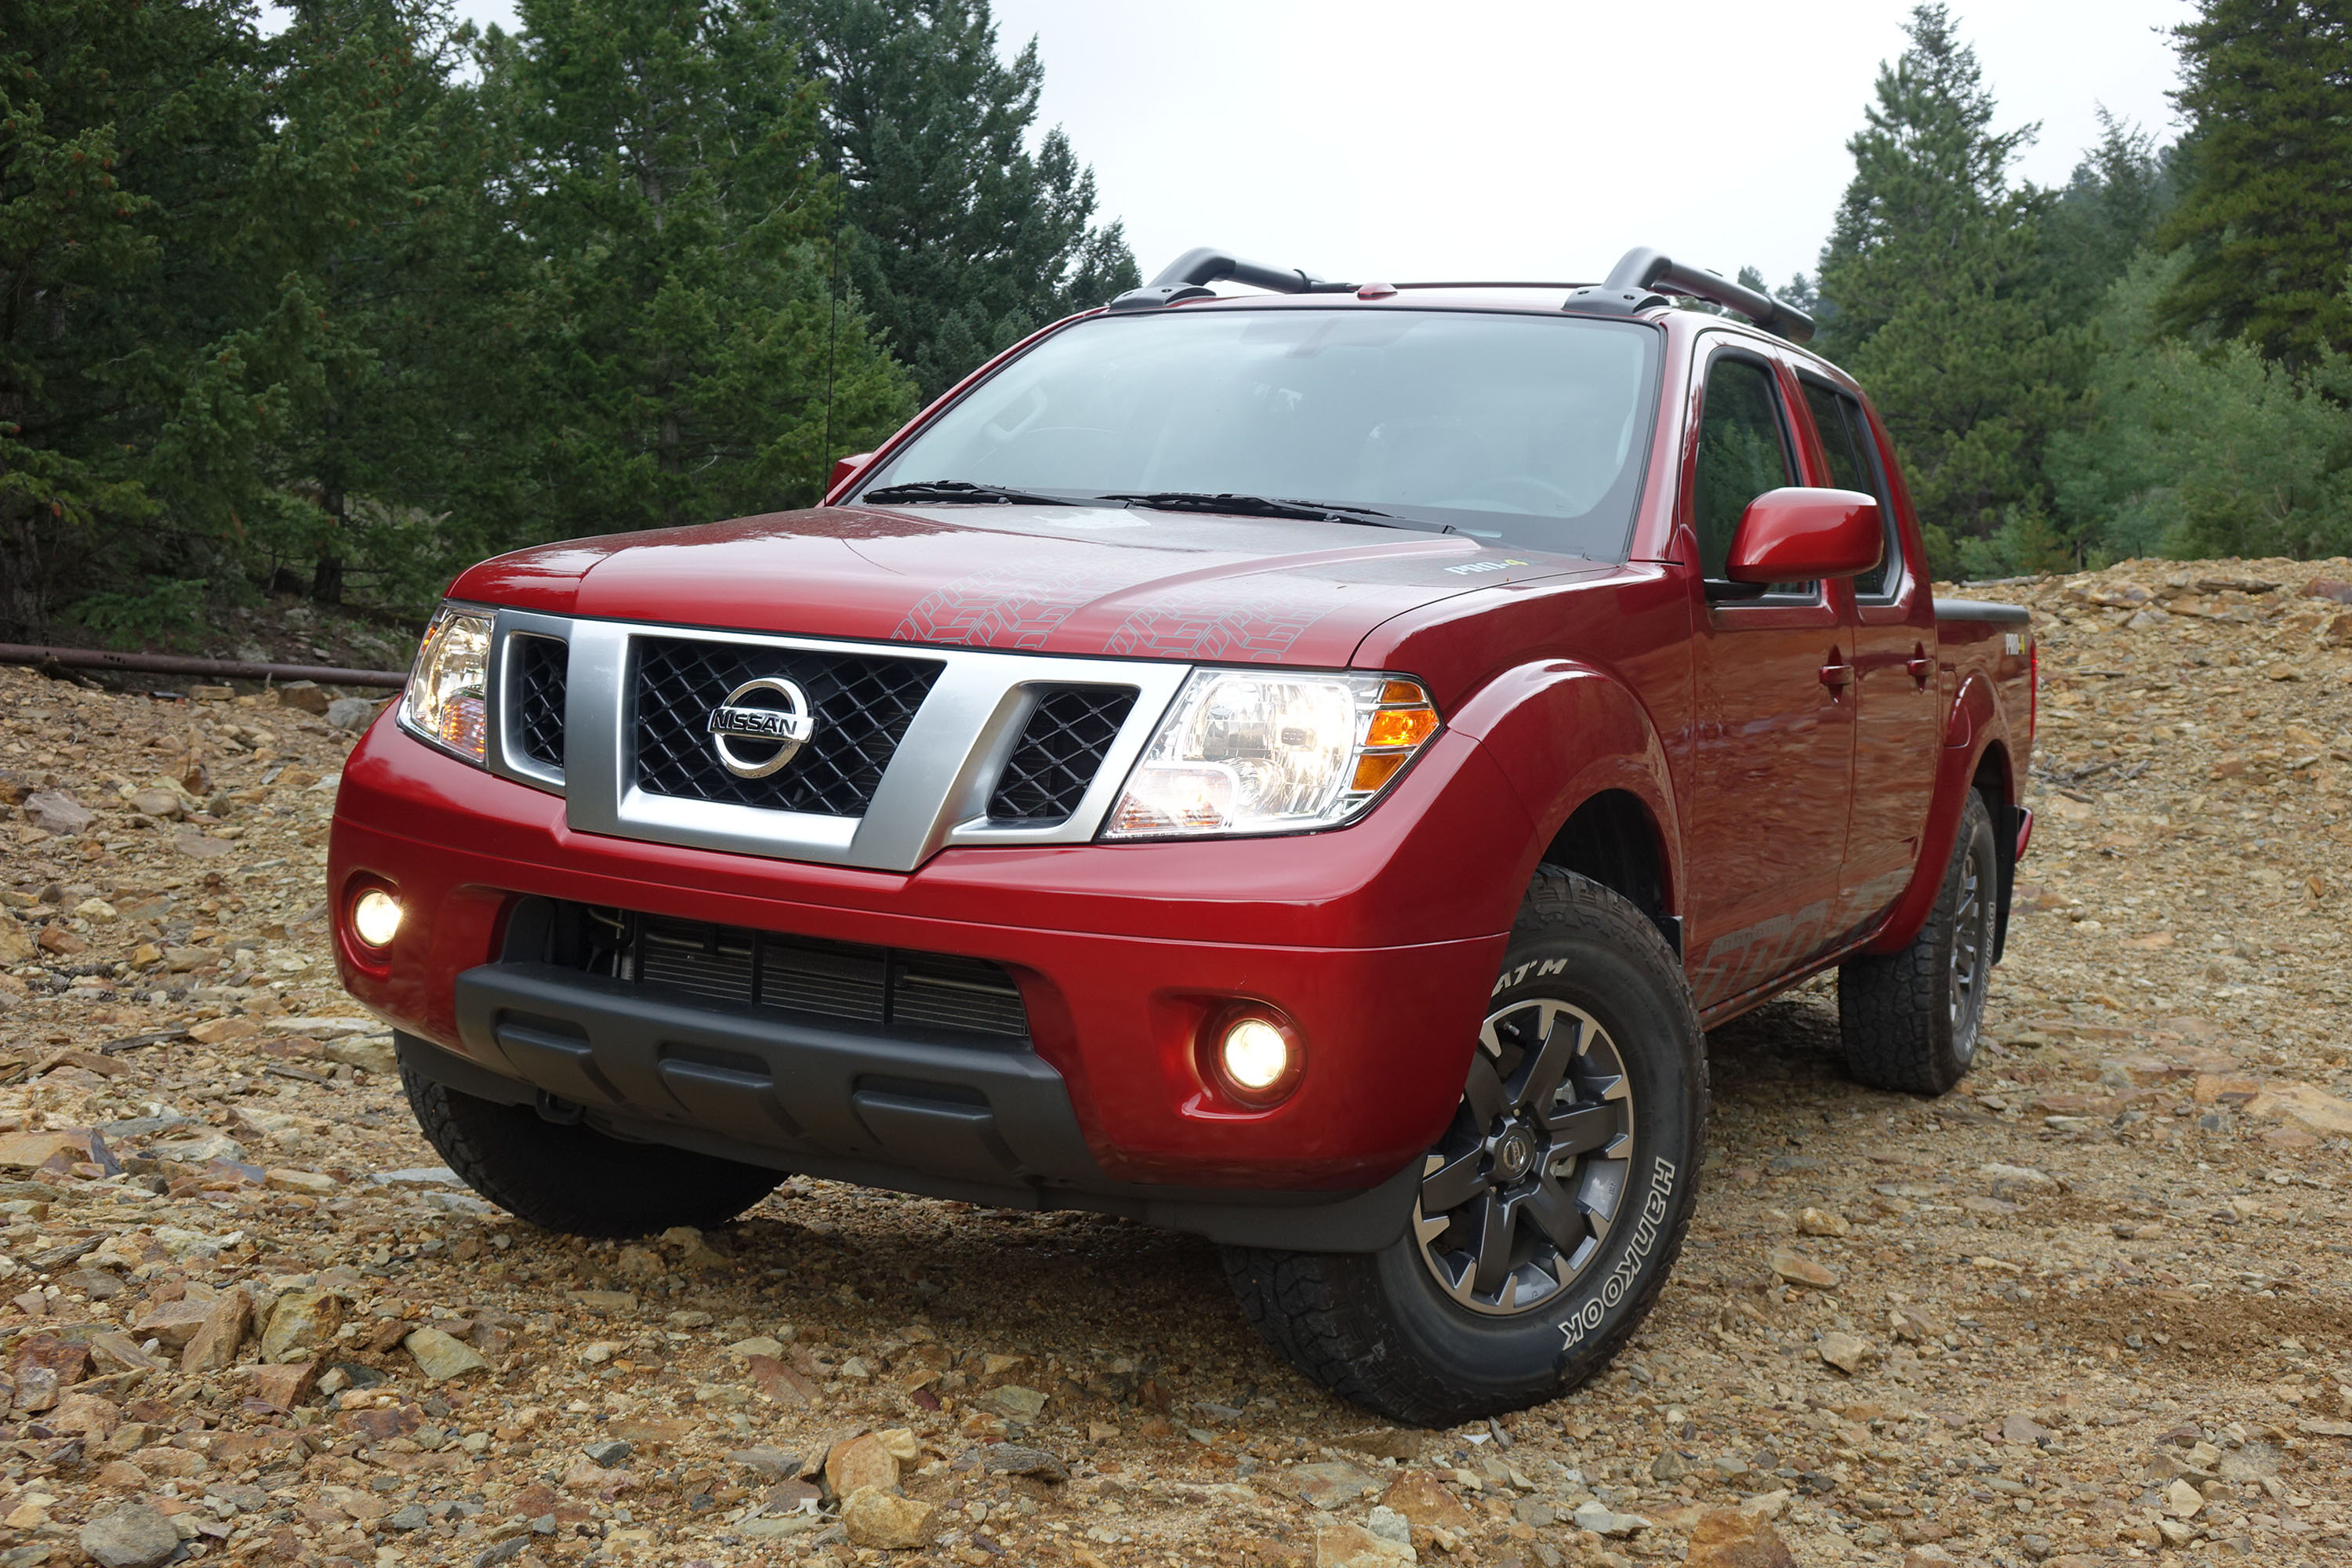 Nissan will finally replace its aging Frontier mid-size pickup